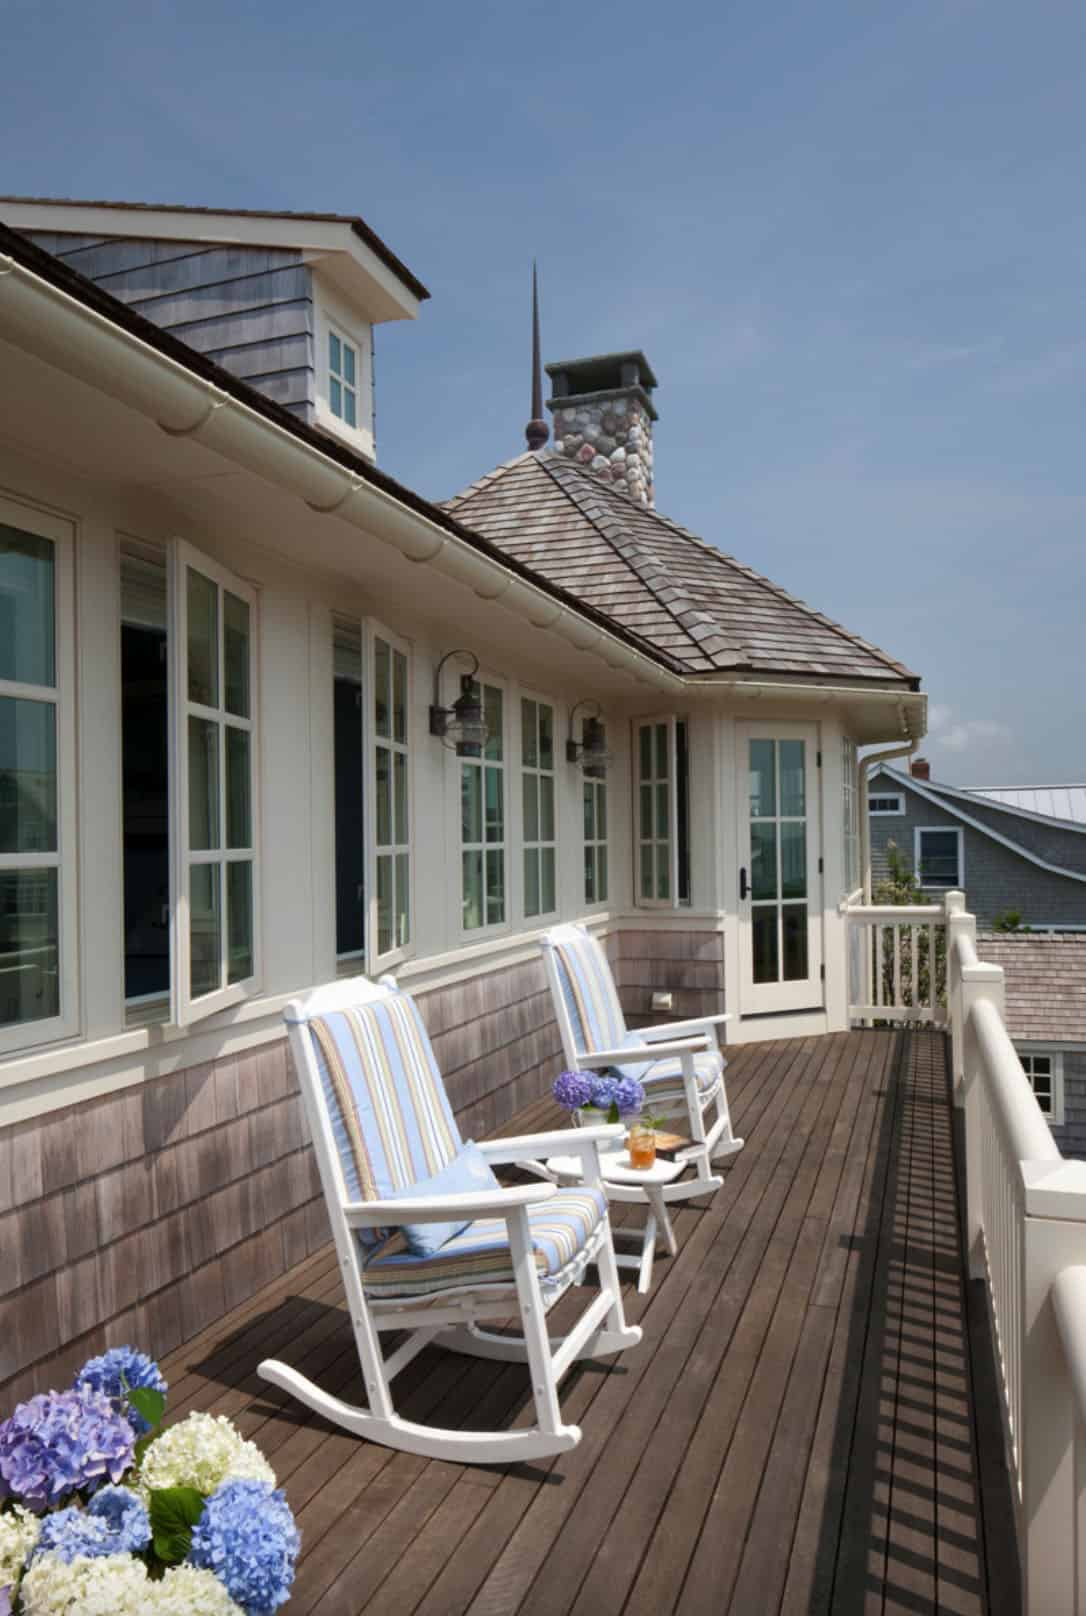 shingle-style-beach-house-balcony